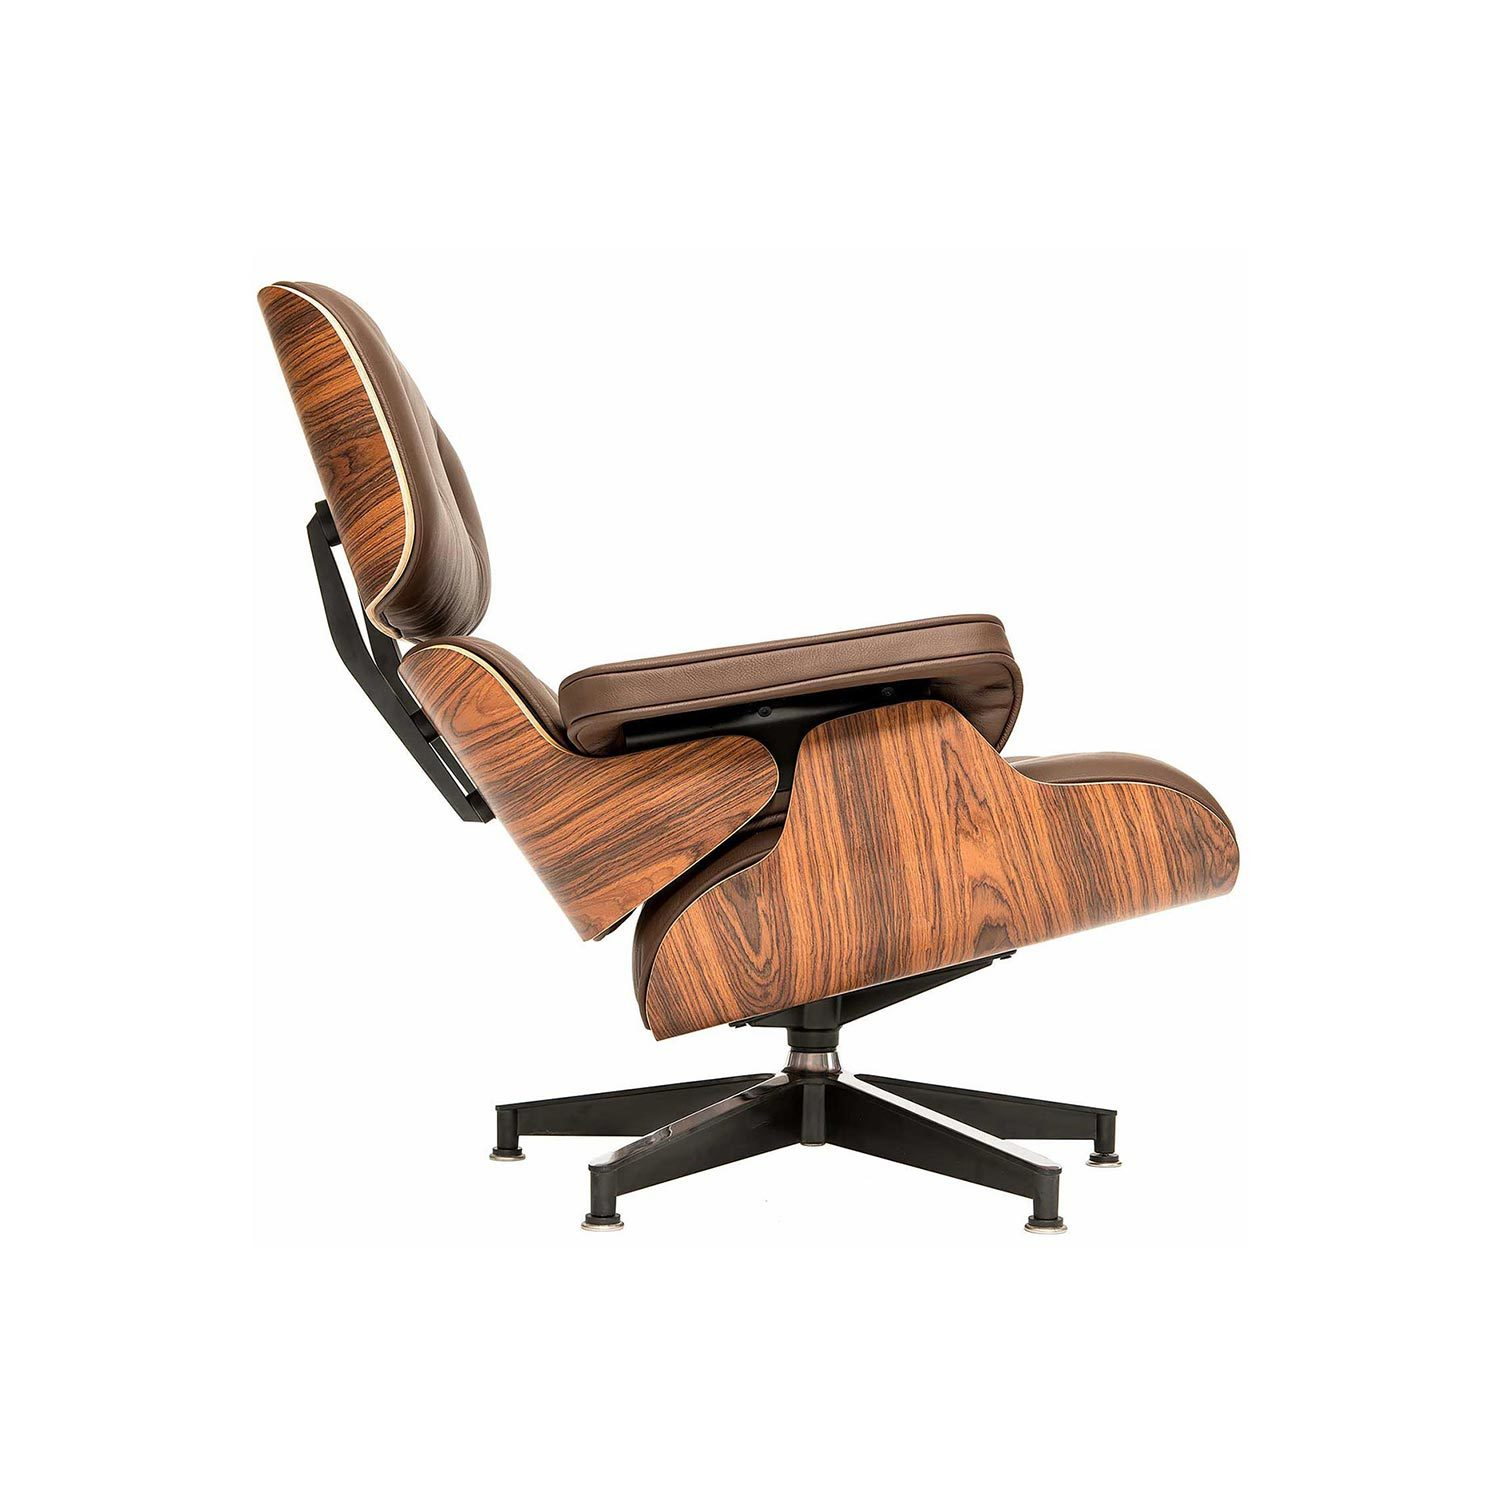 Pleasing Eames Lounge Chair Main Steelform The Best Reproductions Bralicious Painted Fabric Chair Ideas Braliciousco